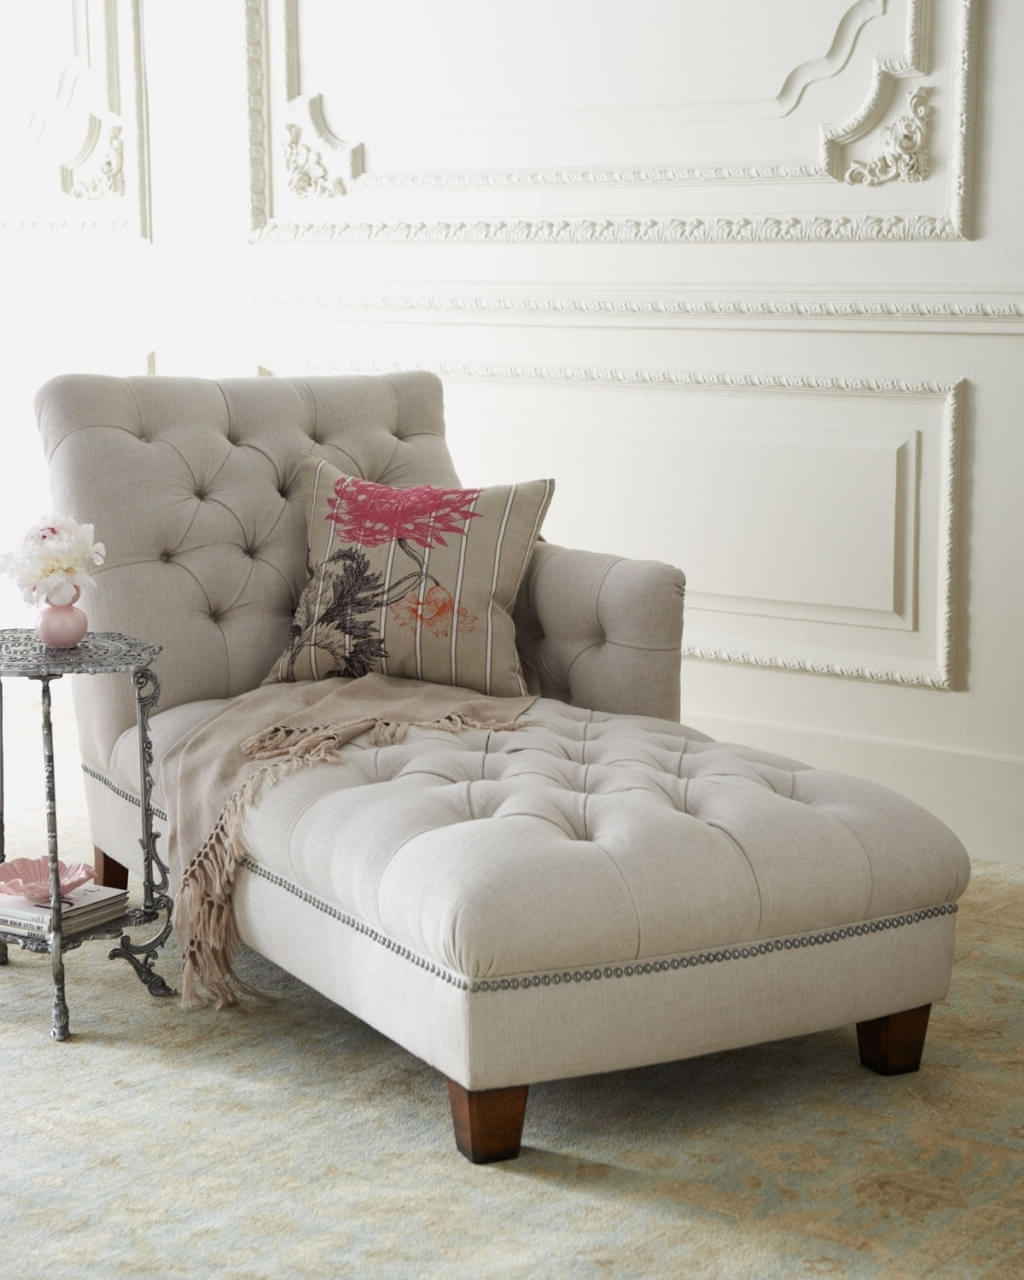 Target Chaise Lounges For Well Known Furniture: Relaxing White Tufted Chaise Lounge With Small Round (View 8 of 15)